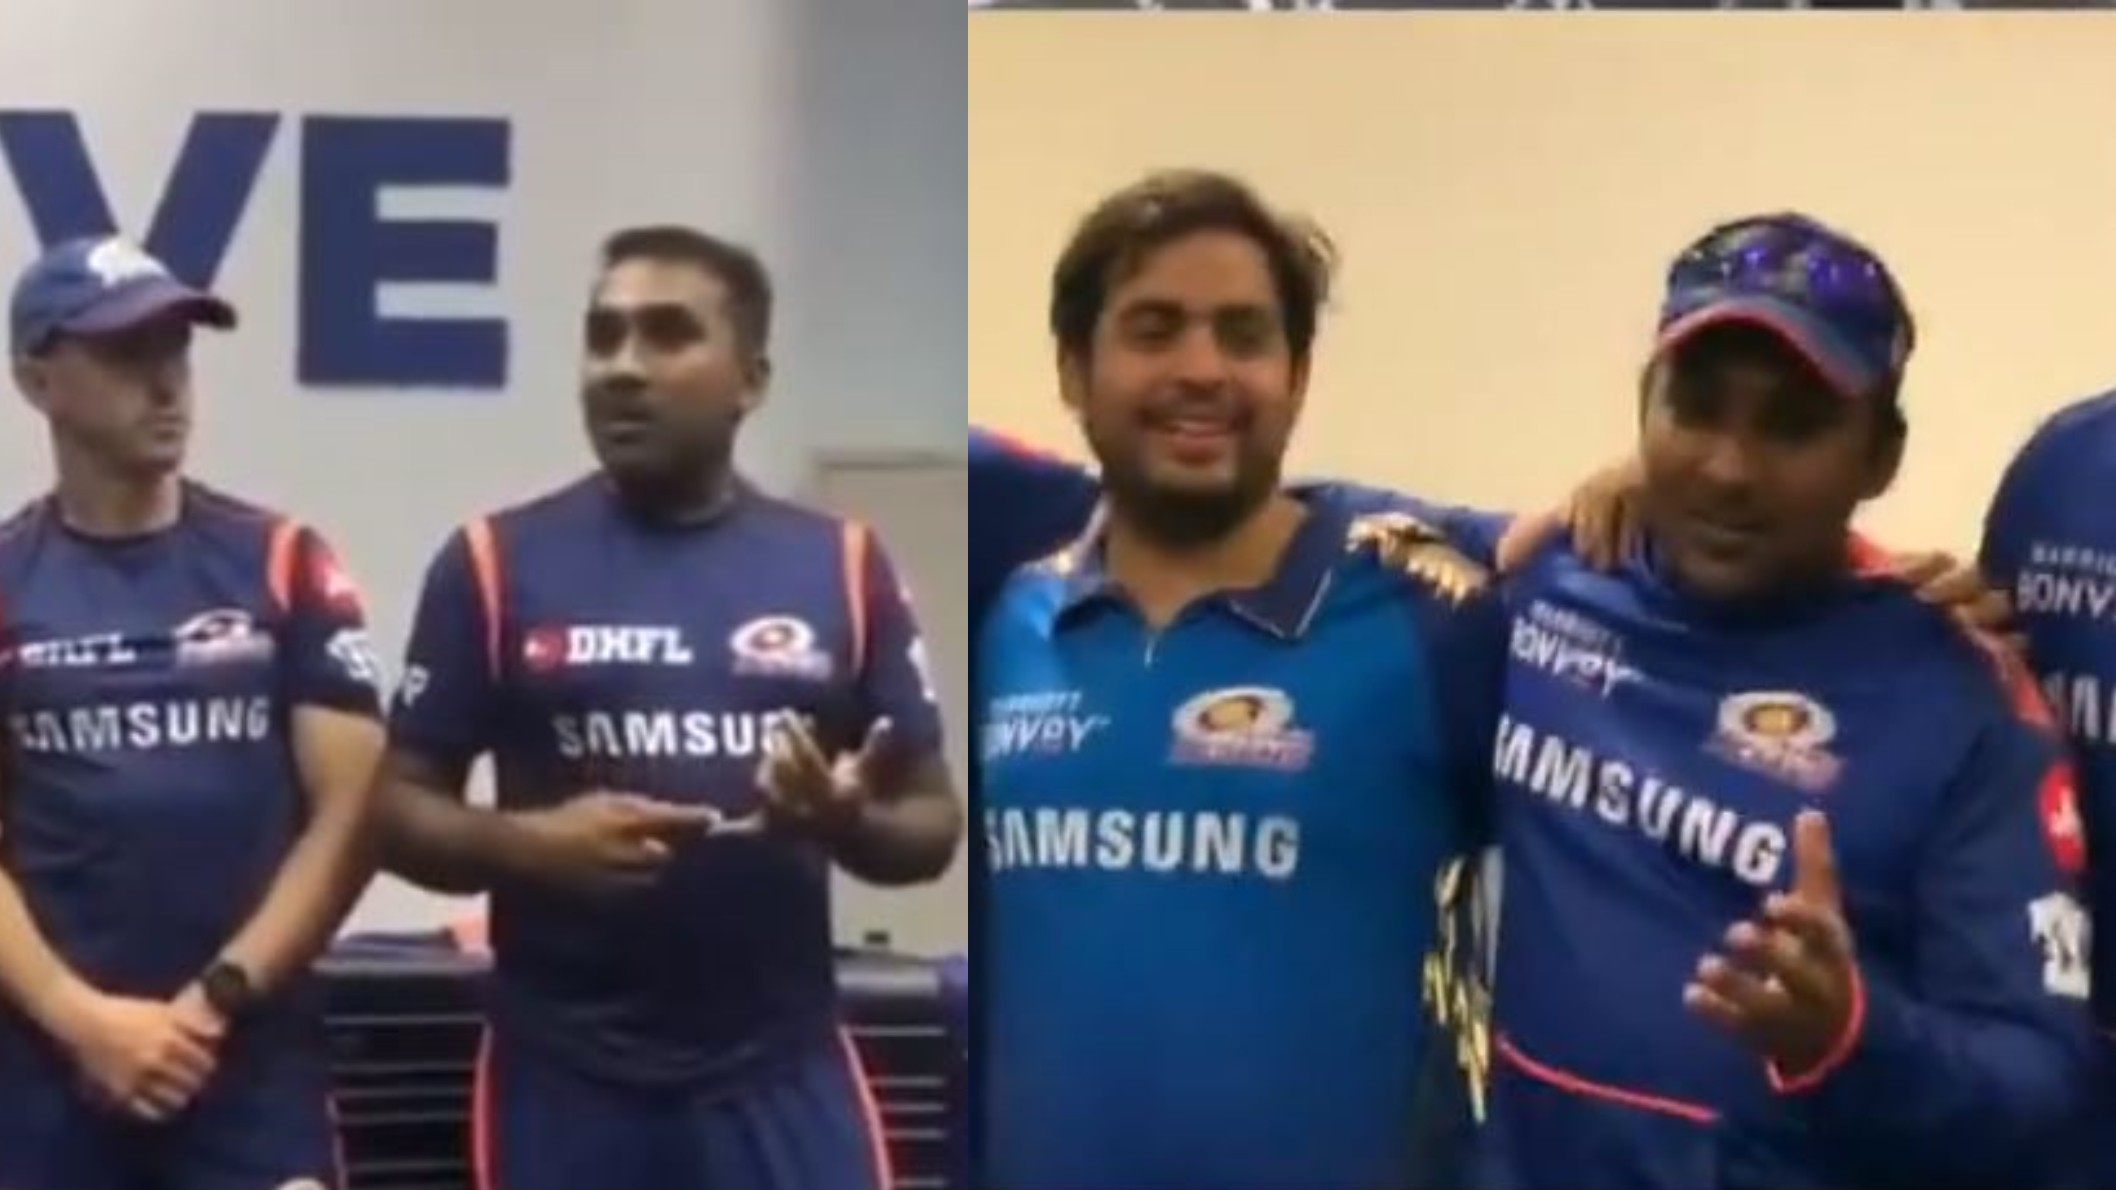 IPL 2020: WATCH- MI coach Jayawardena's team talk after IPL 13 win similar to that of IPL 2019